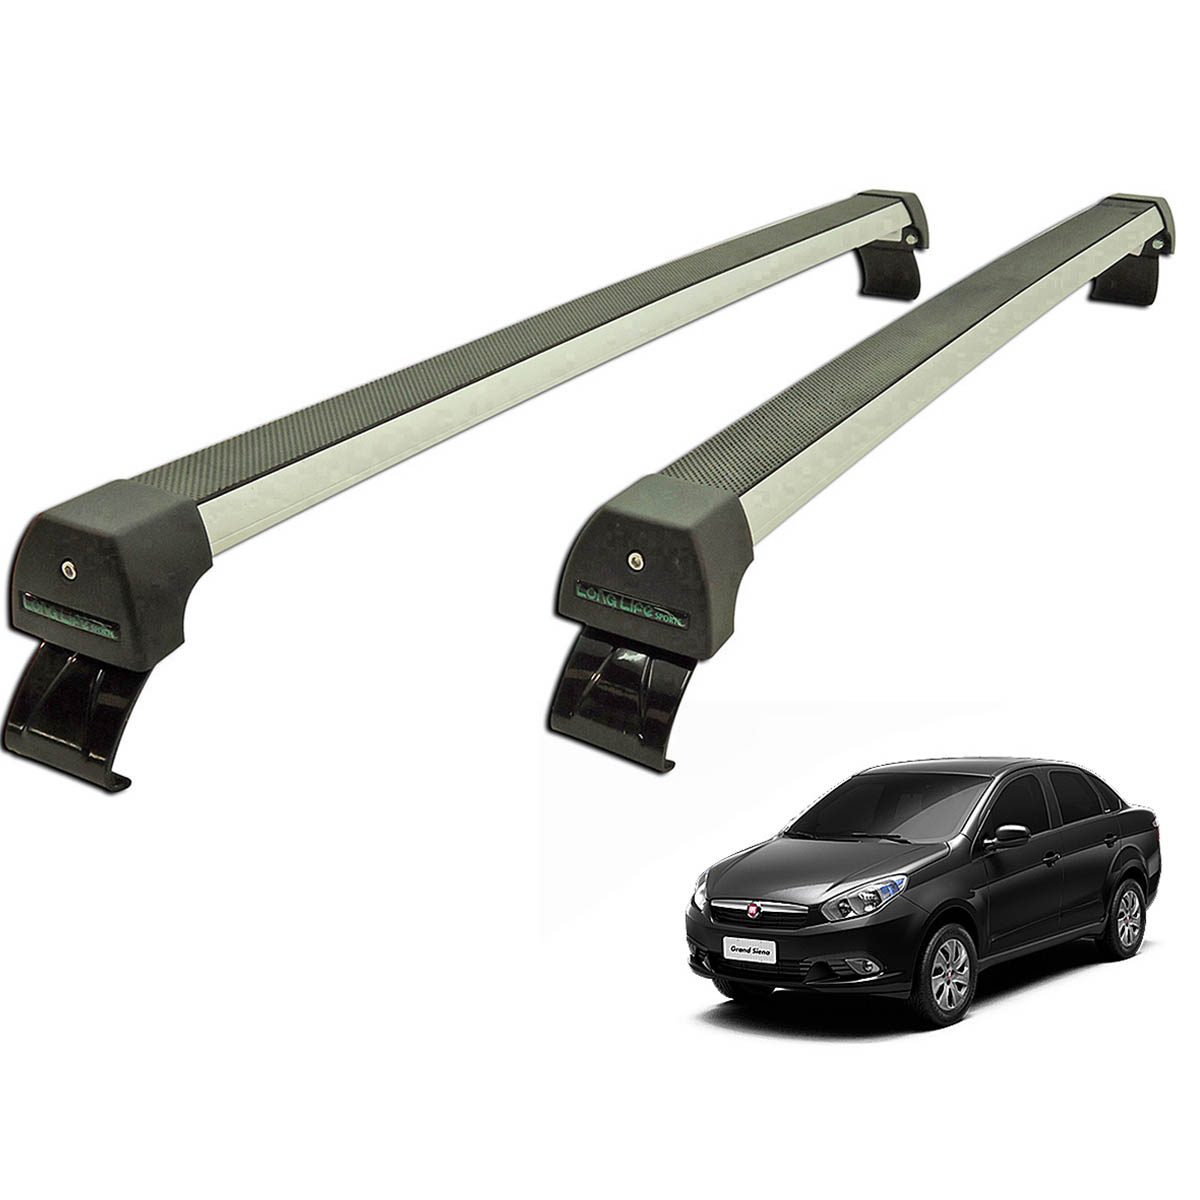 Rack de teto Grand Siena 2012 a 2020 Long Life Sports anodizado